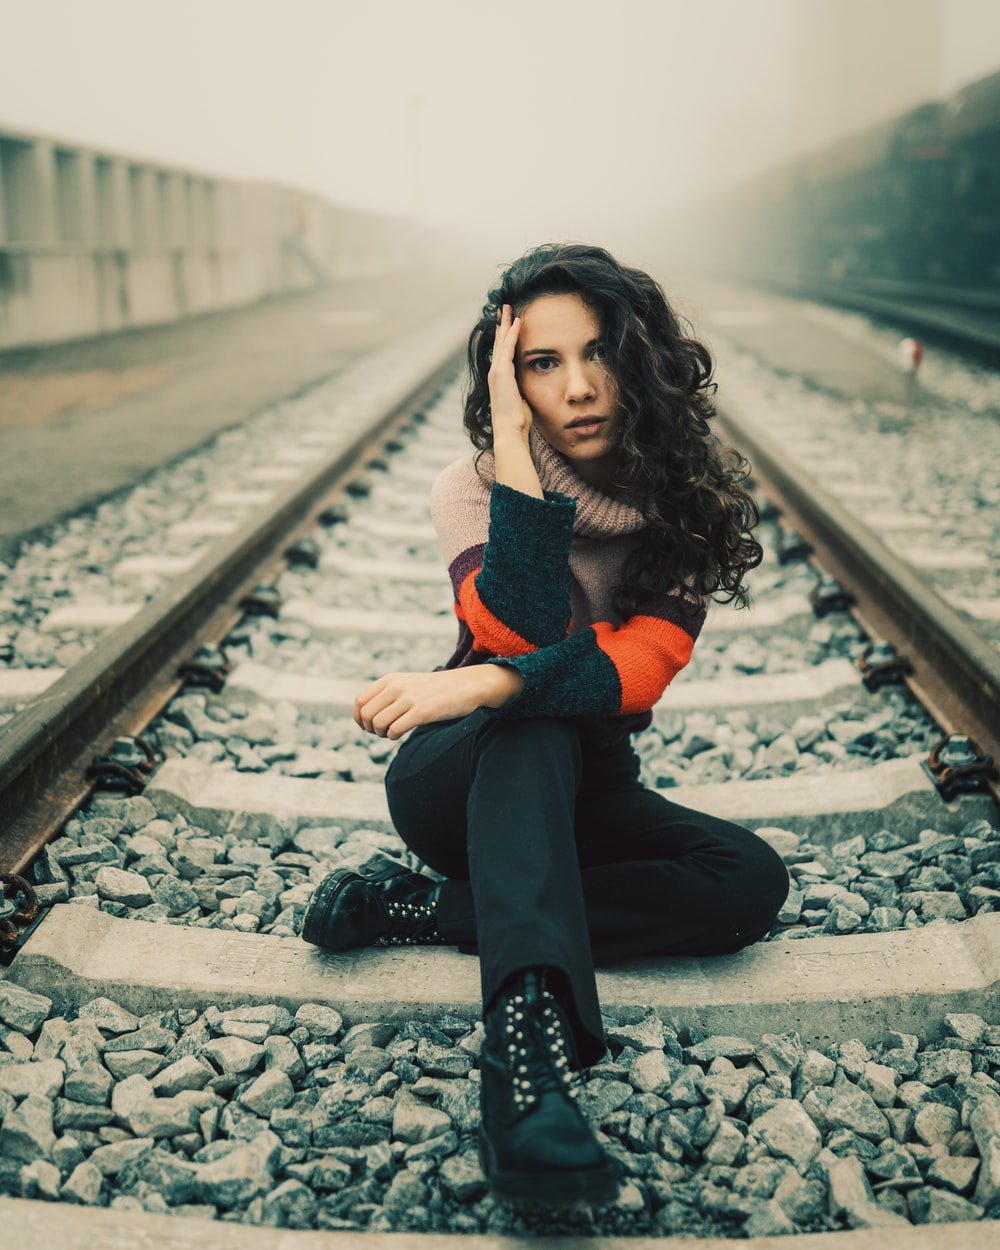 woman in black and orange long sleeve shirt sitting on train rail during daytime